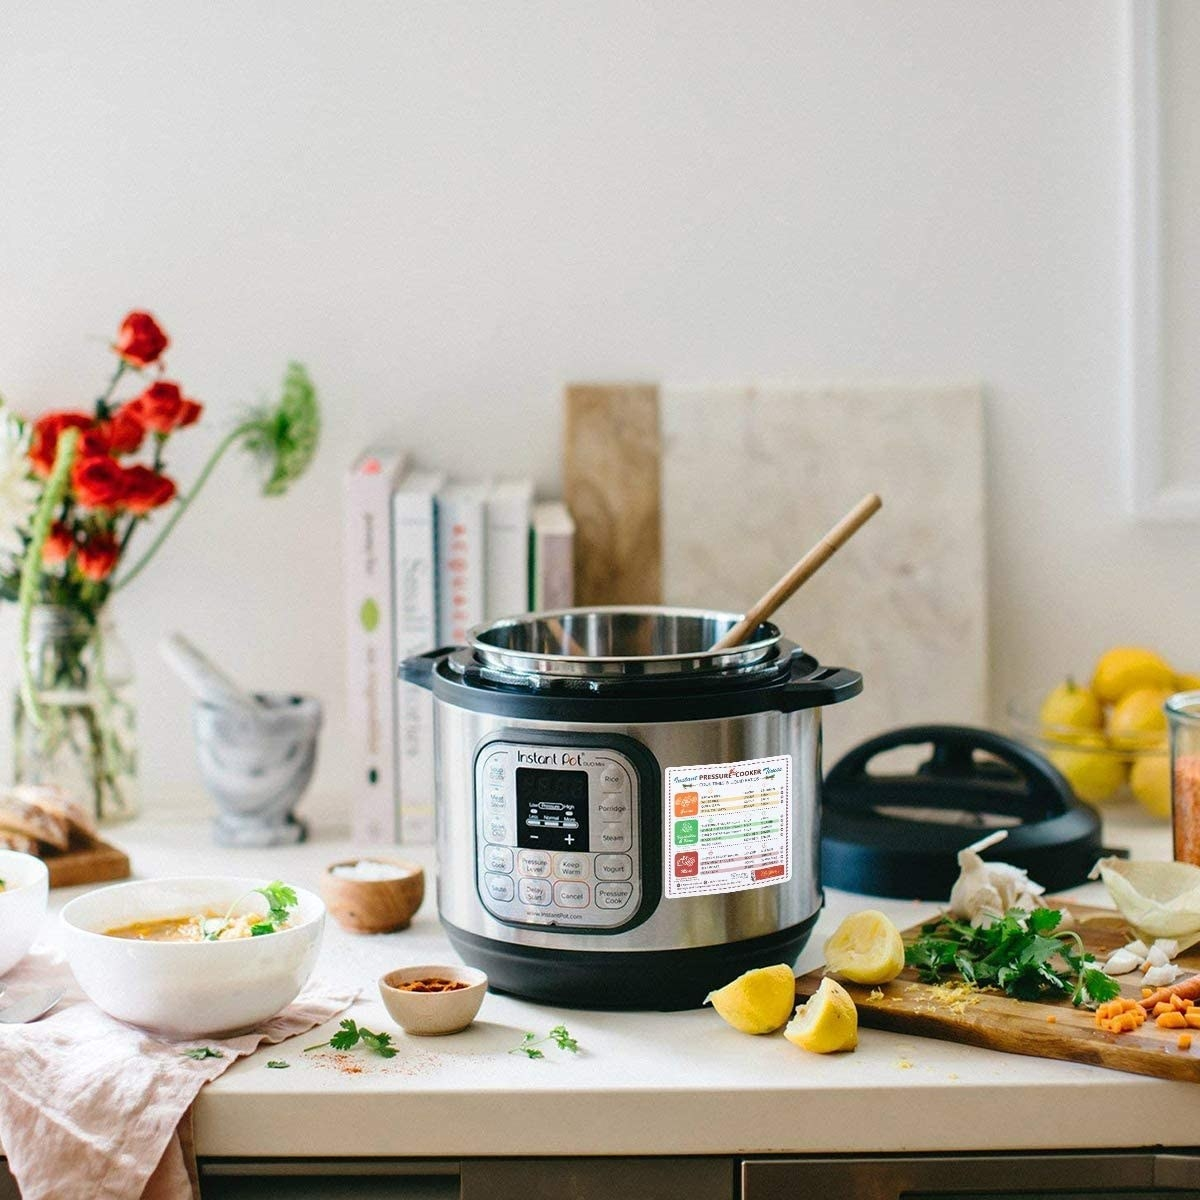 An Instant pot with a large magnet on the side